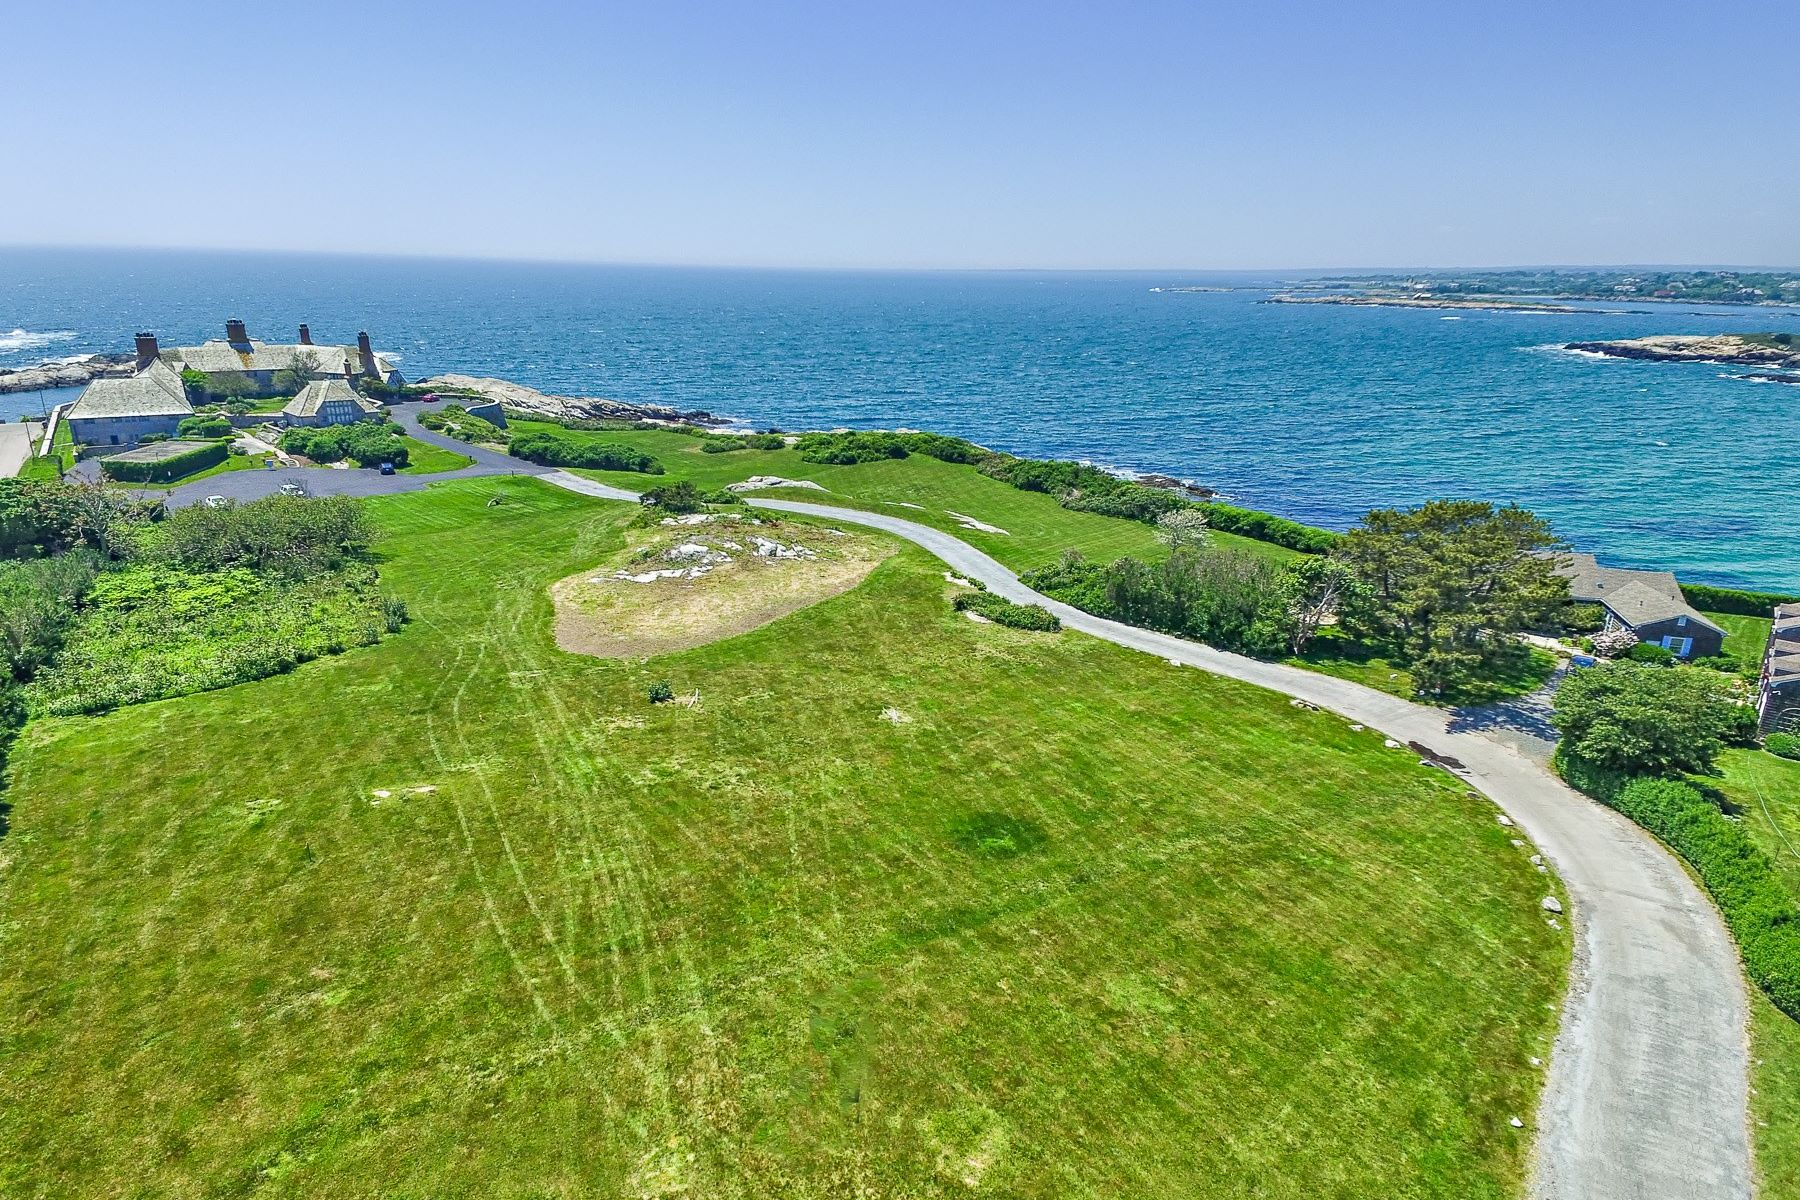 Land for Sale at 55 Ledge Rd, Newport, RI 55 Ledge Rd Newport, Rhode Island 02840 United States